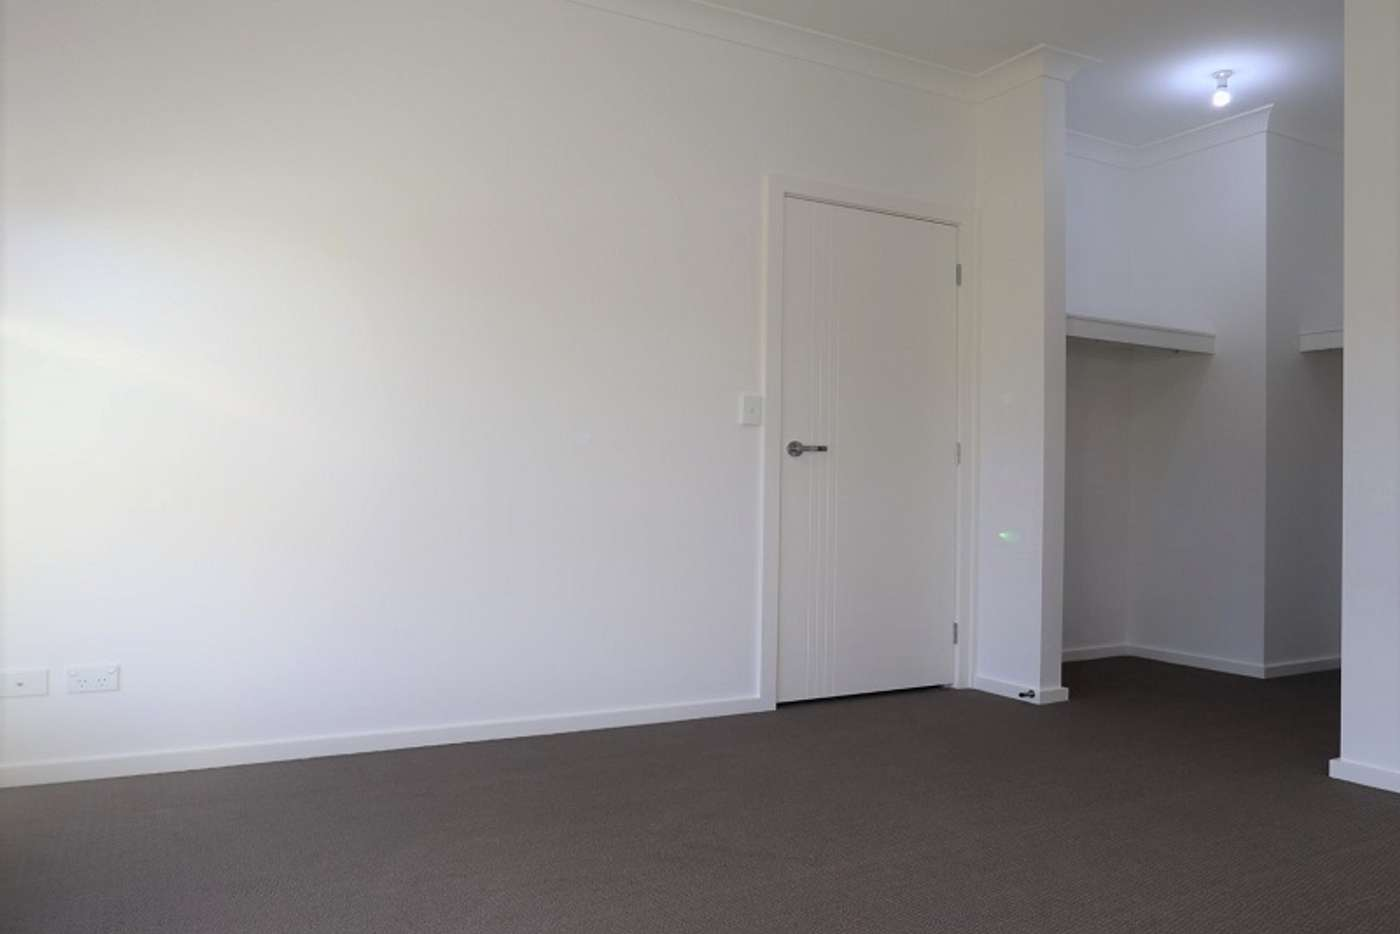 Sixth view of Homely house listing, 10 Stonecrop Street, Denham Court NSW 2565